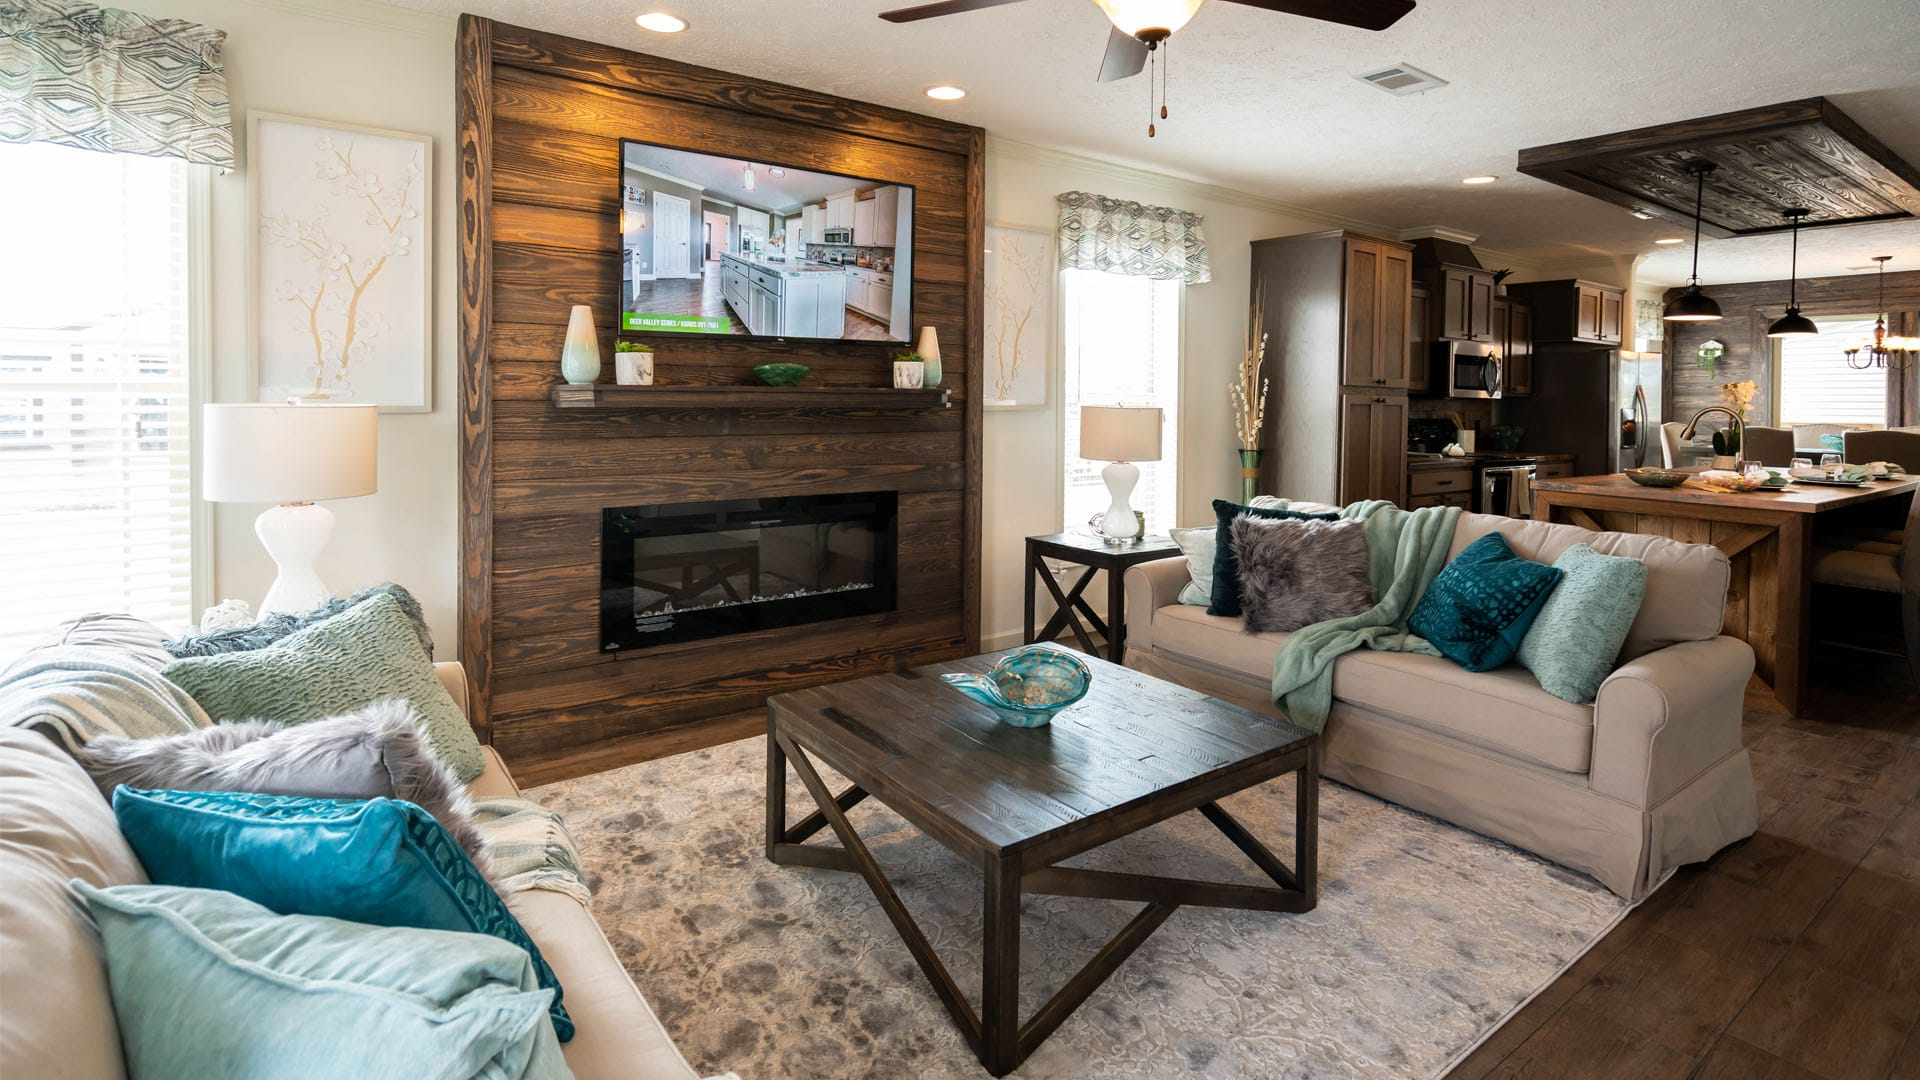 Deer Valley Homebuilders - Mossy Oak Nativ Living Series Robins Nest Living Room